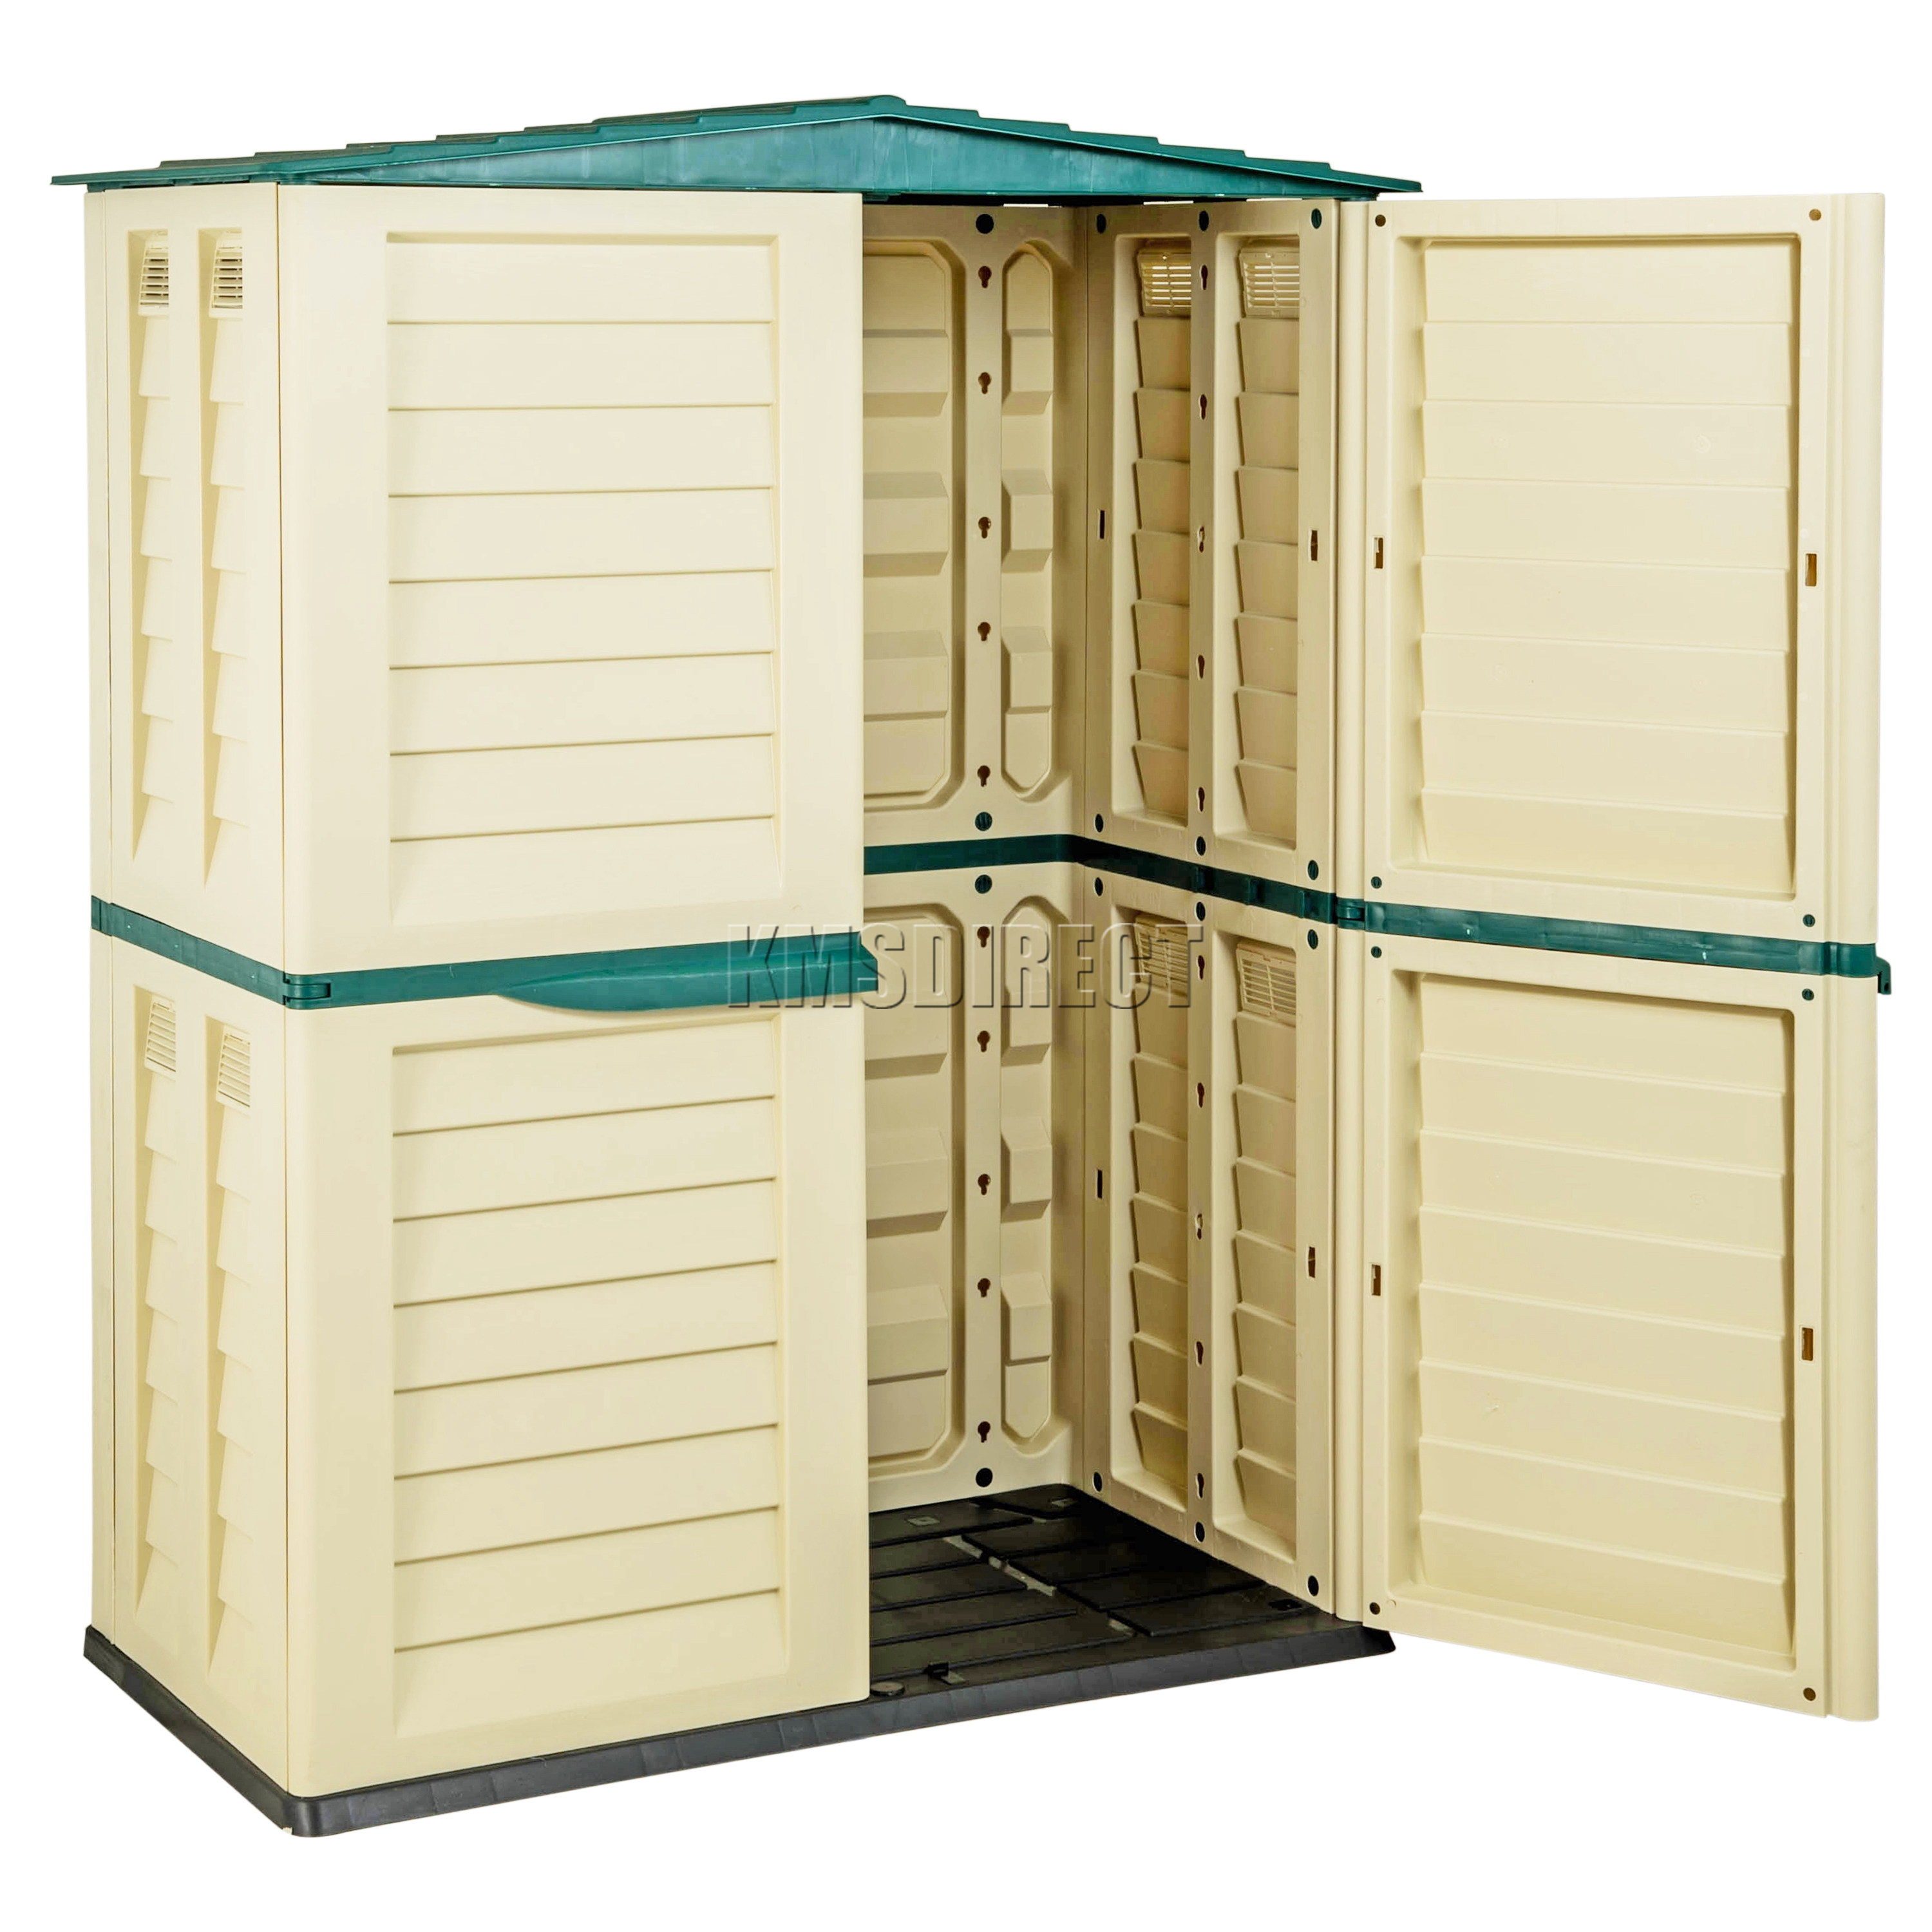 Starplast outdoor plastic garden tall shed box storage for Attaching shelves to plastic shed